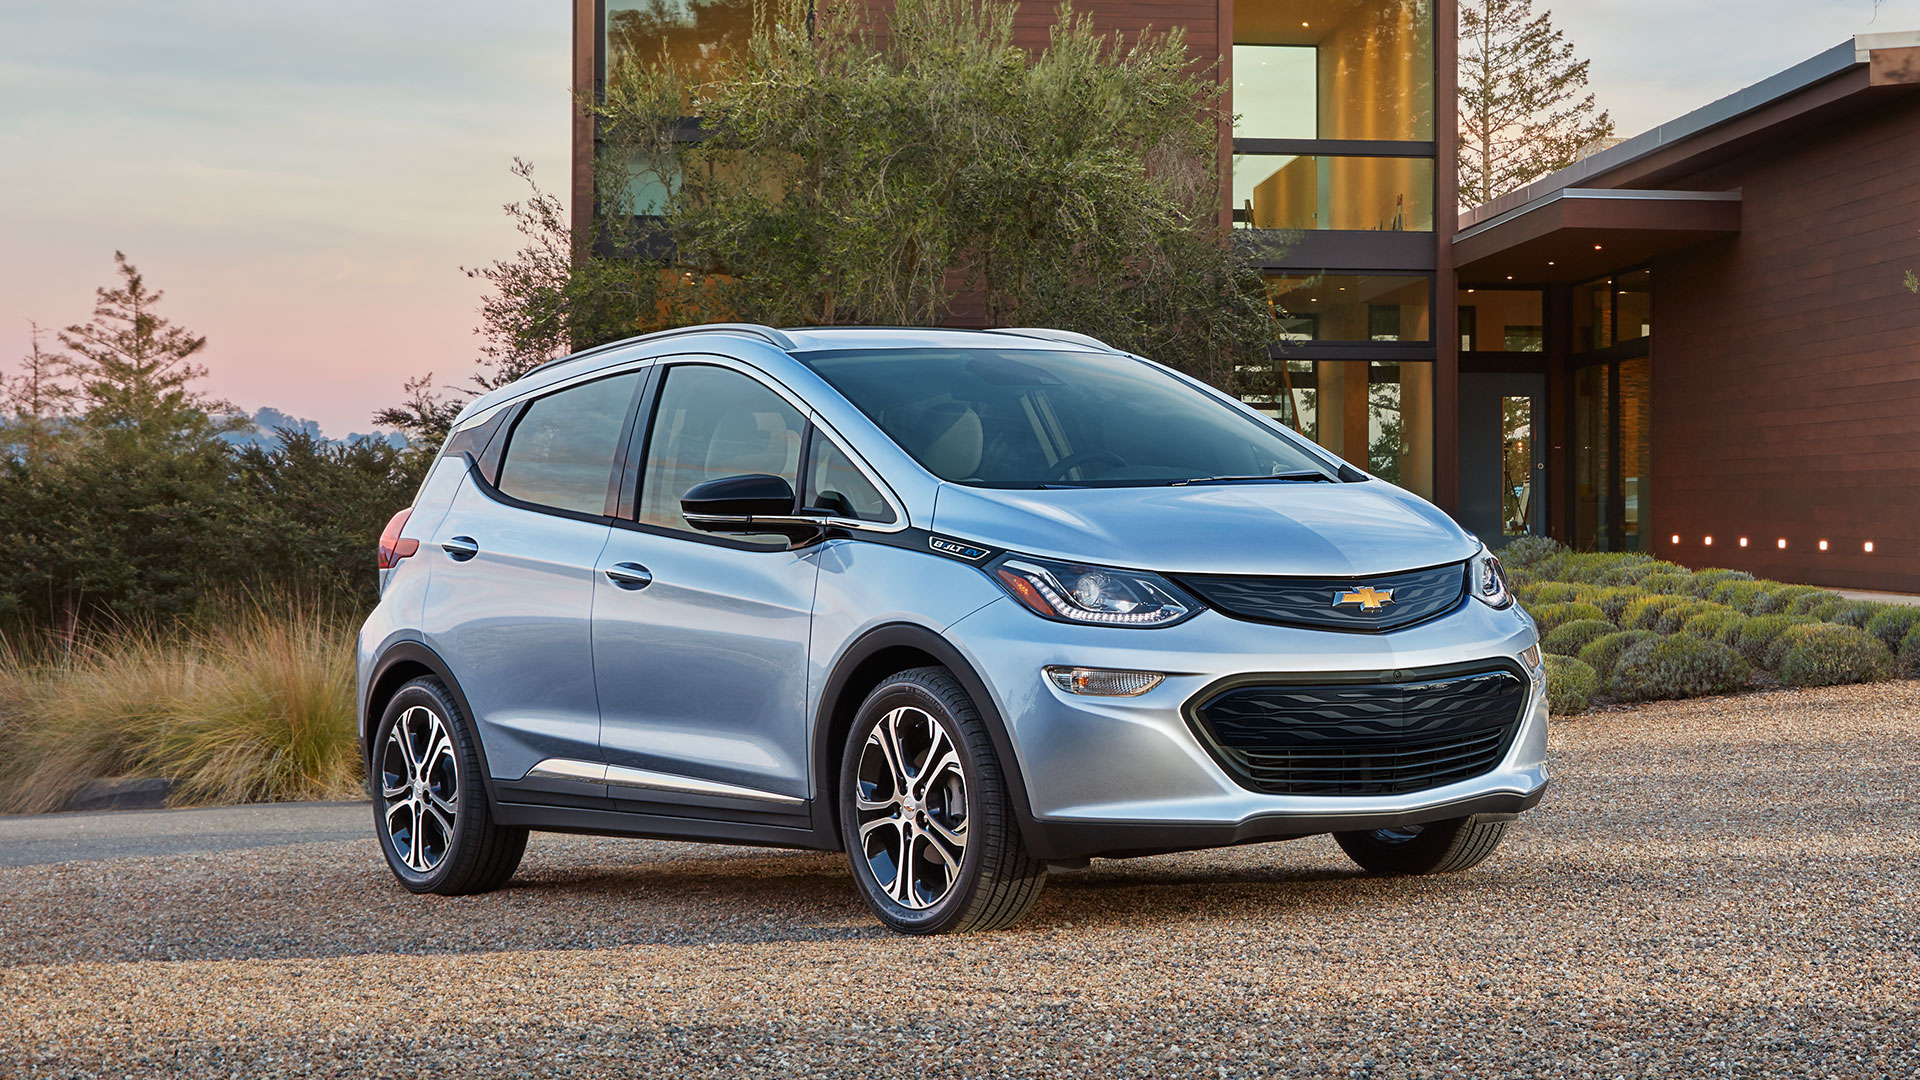 2017 Chevy Bolt In Ma At Muzi Chevy Serving Boston Newton Needham